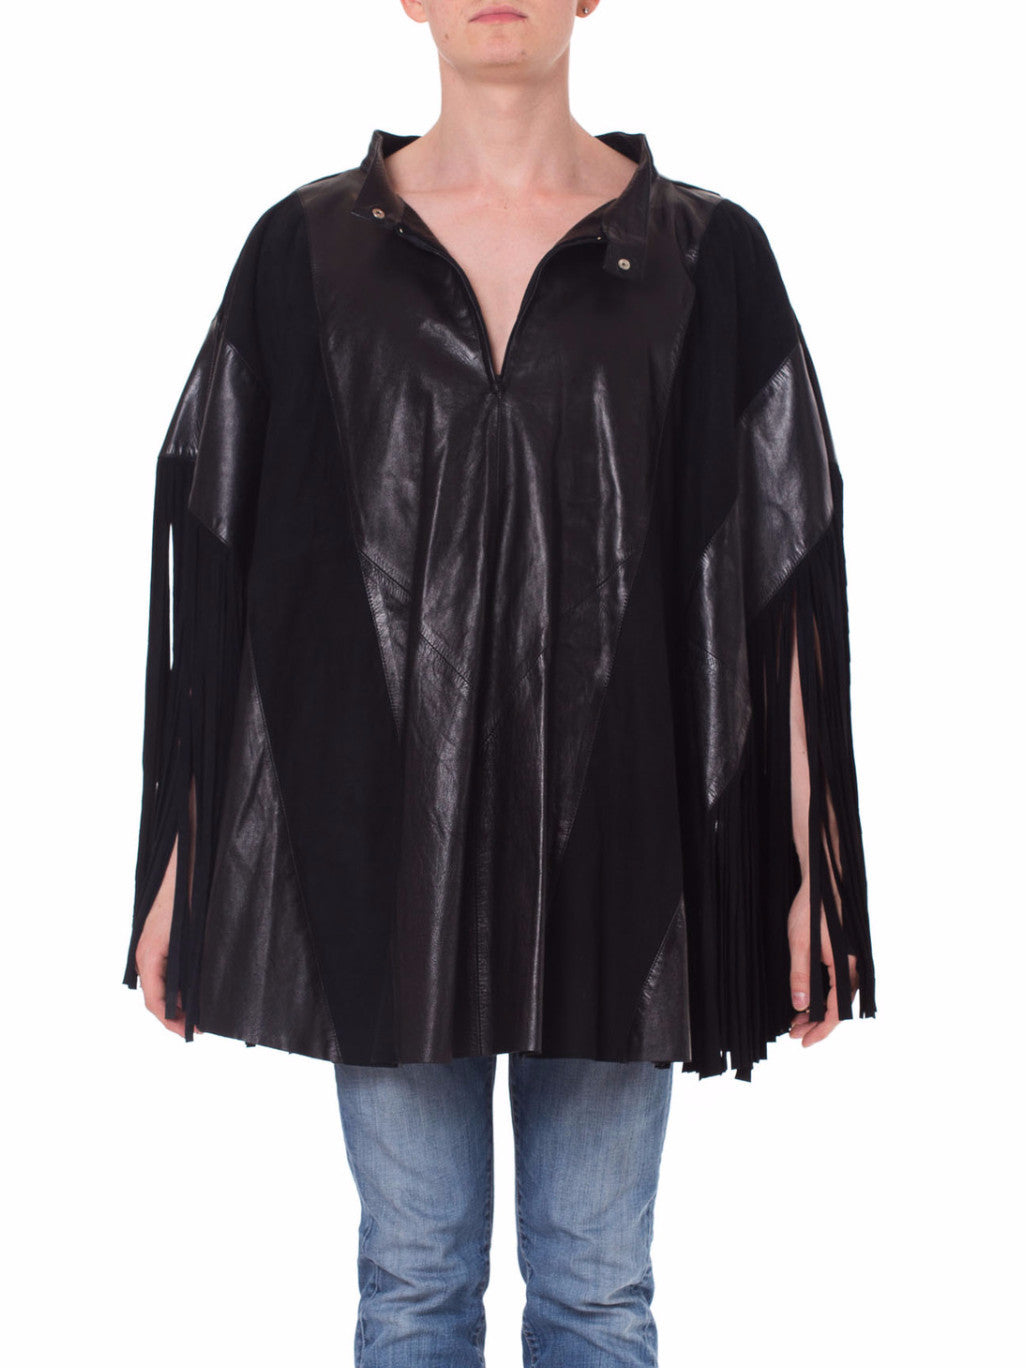 1970s Fringed Leather and Suede Poncho